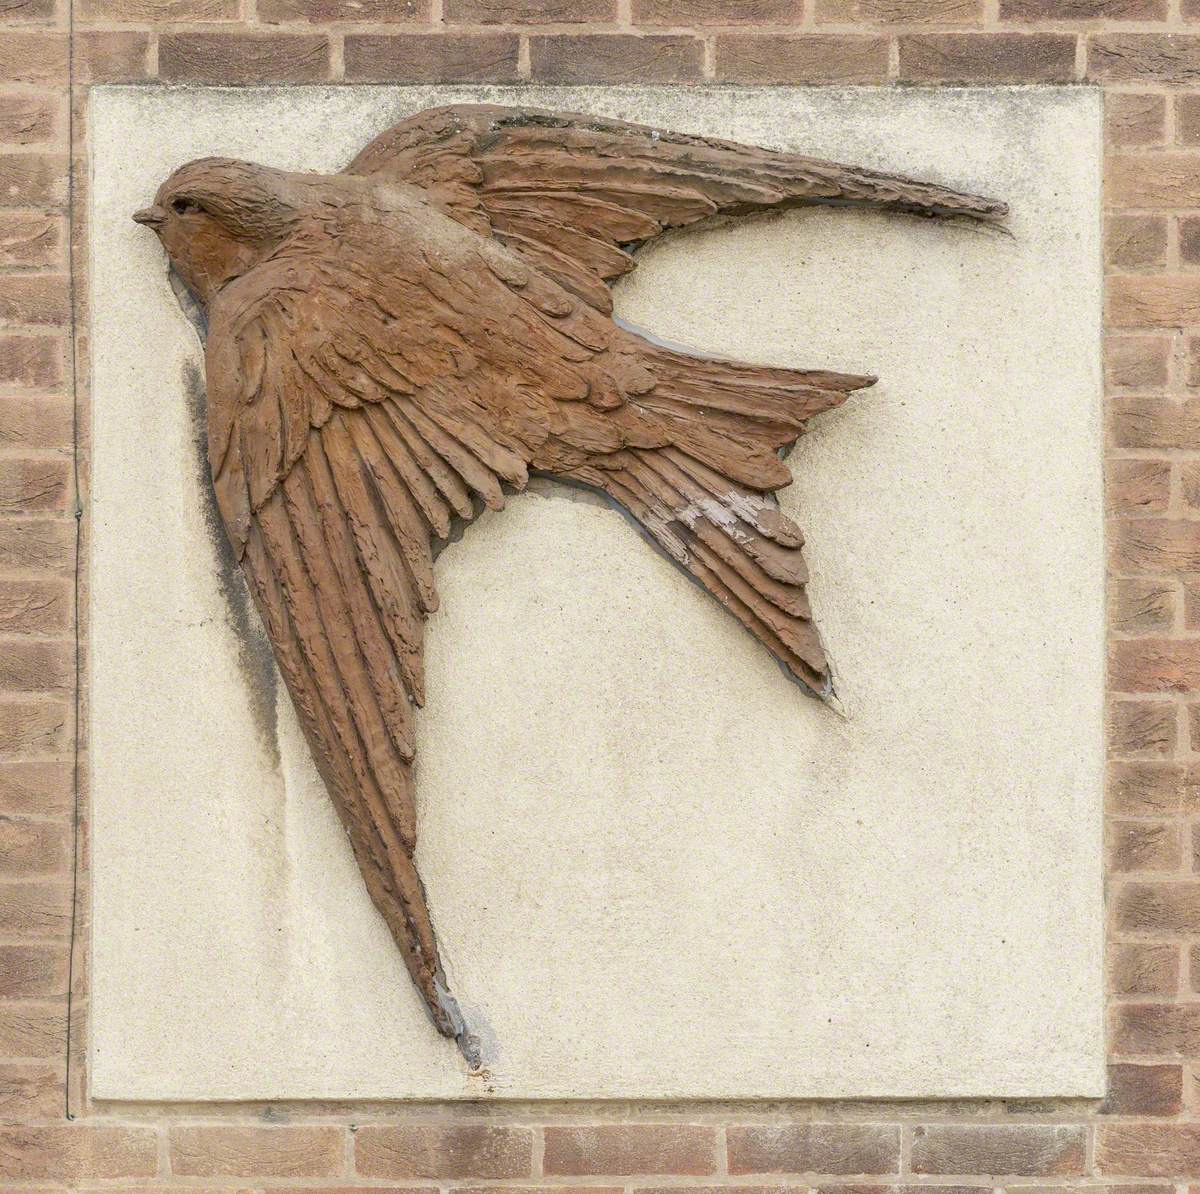 Relief of a House Martin by Willi Soukop